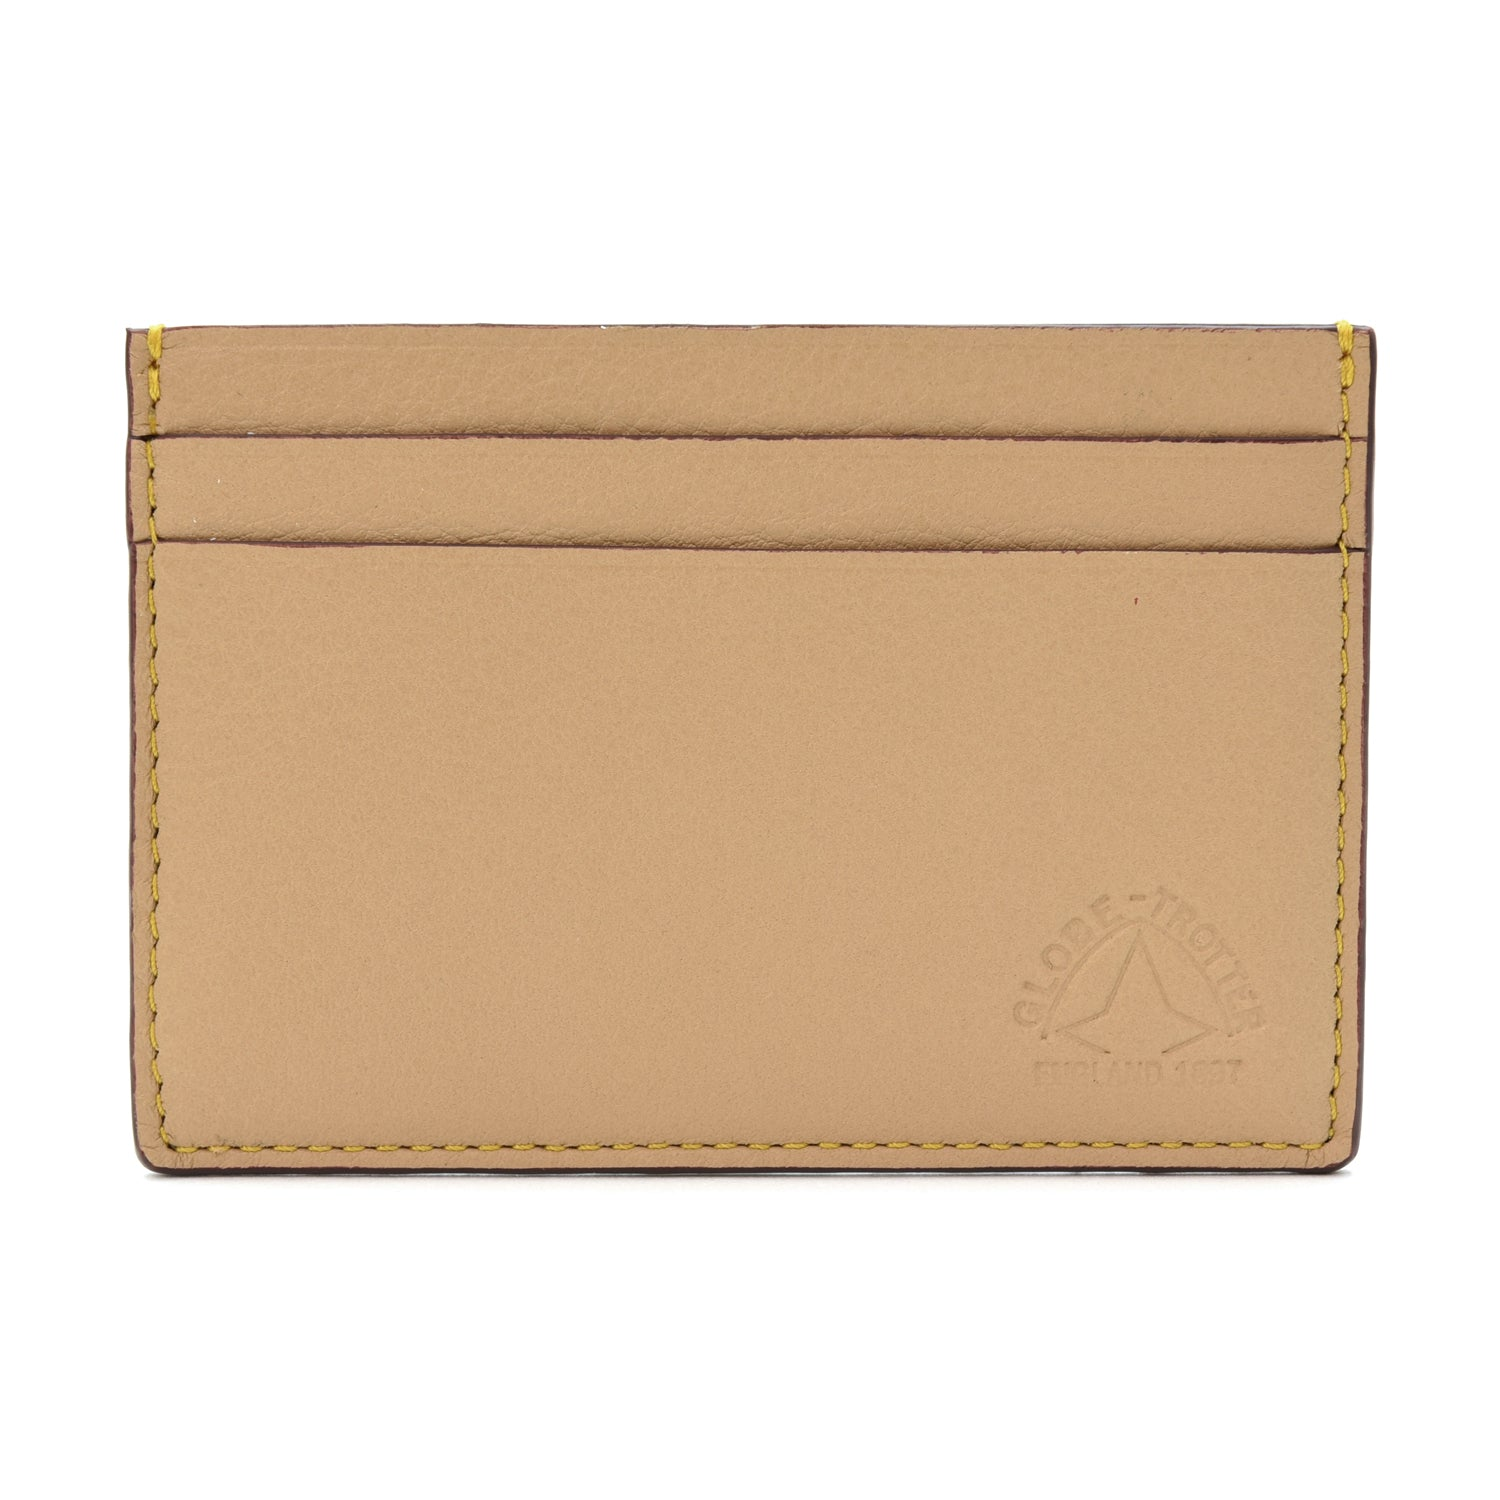 Riviera · Credit Card Holder - Tan